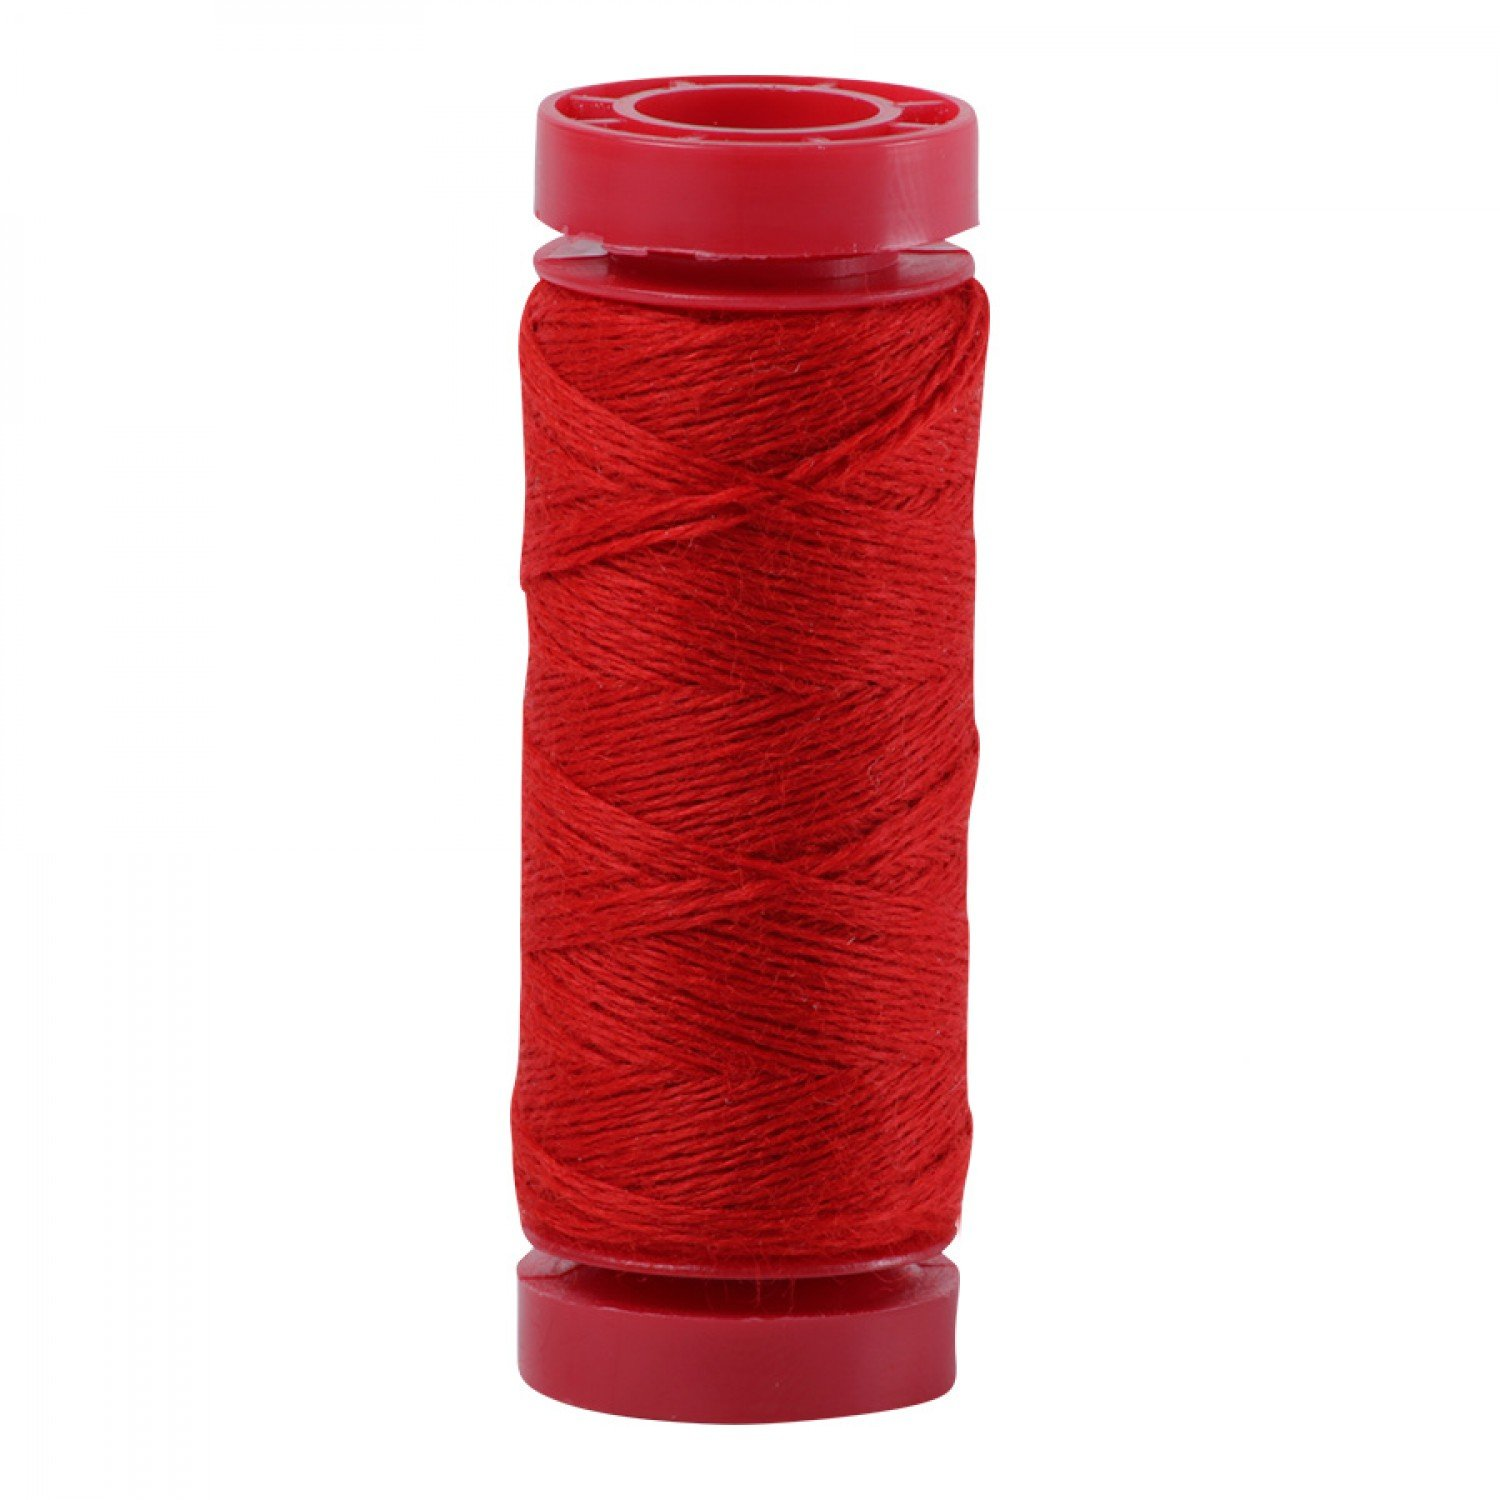 Aurifil 12wt Lana Wool Thread - 8250 Red